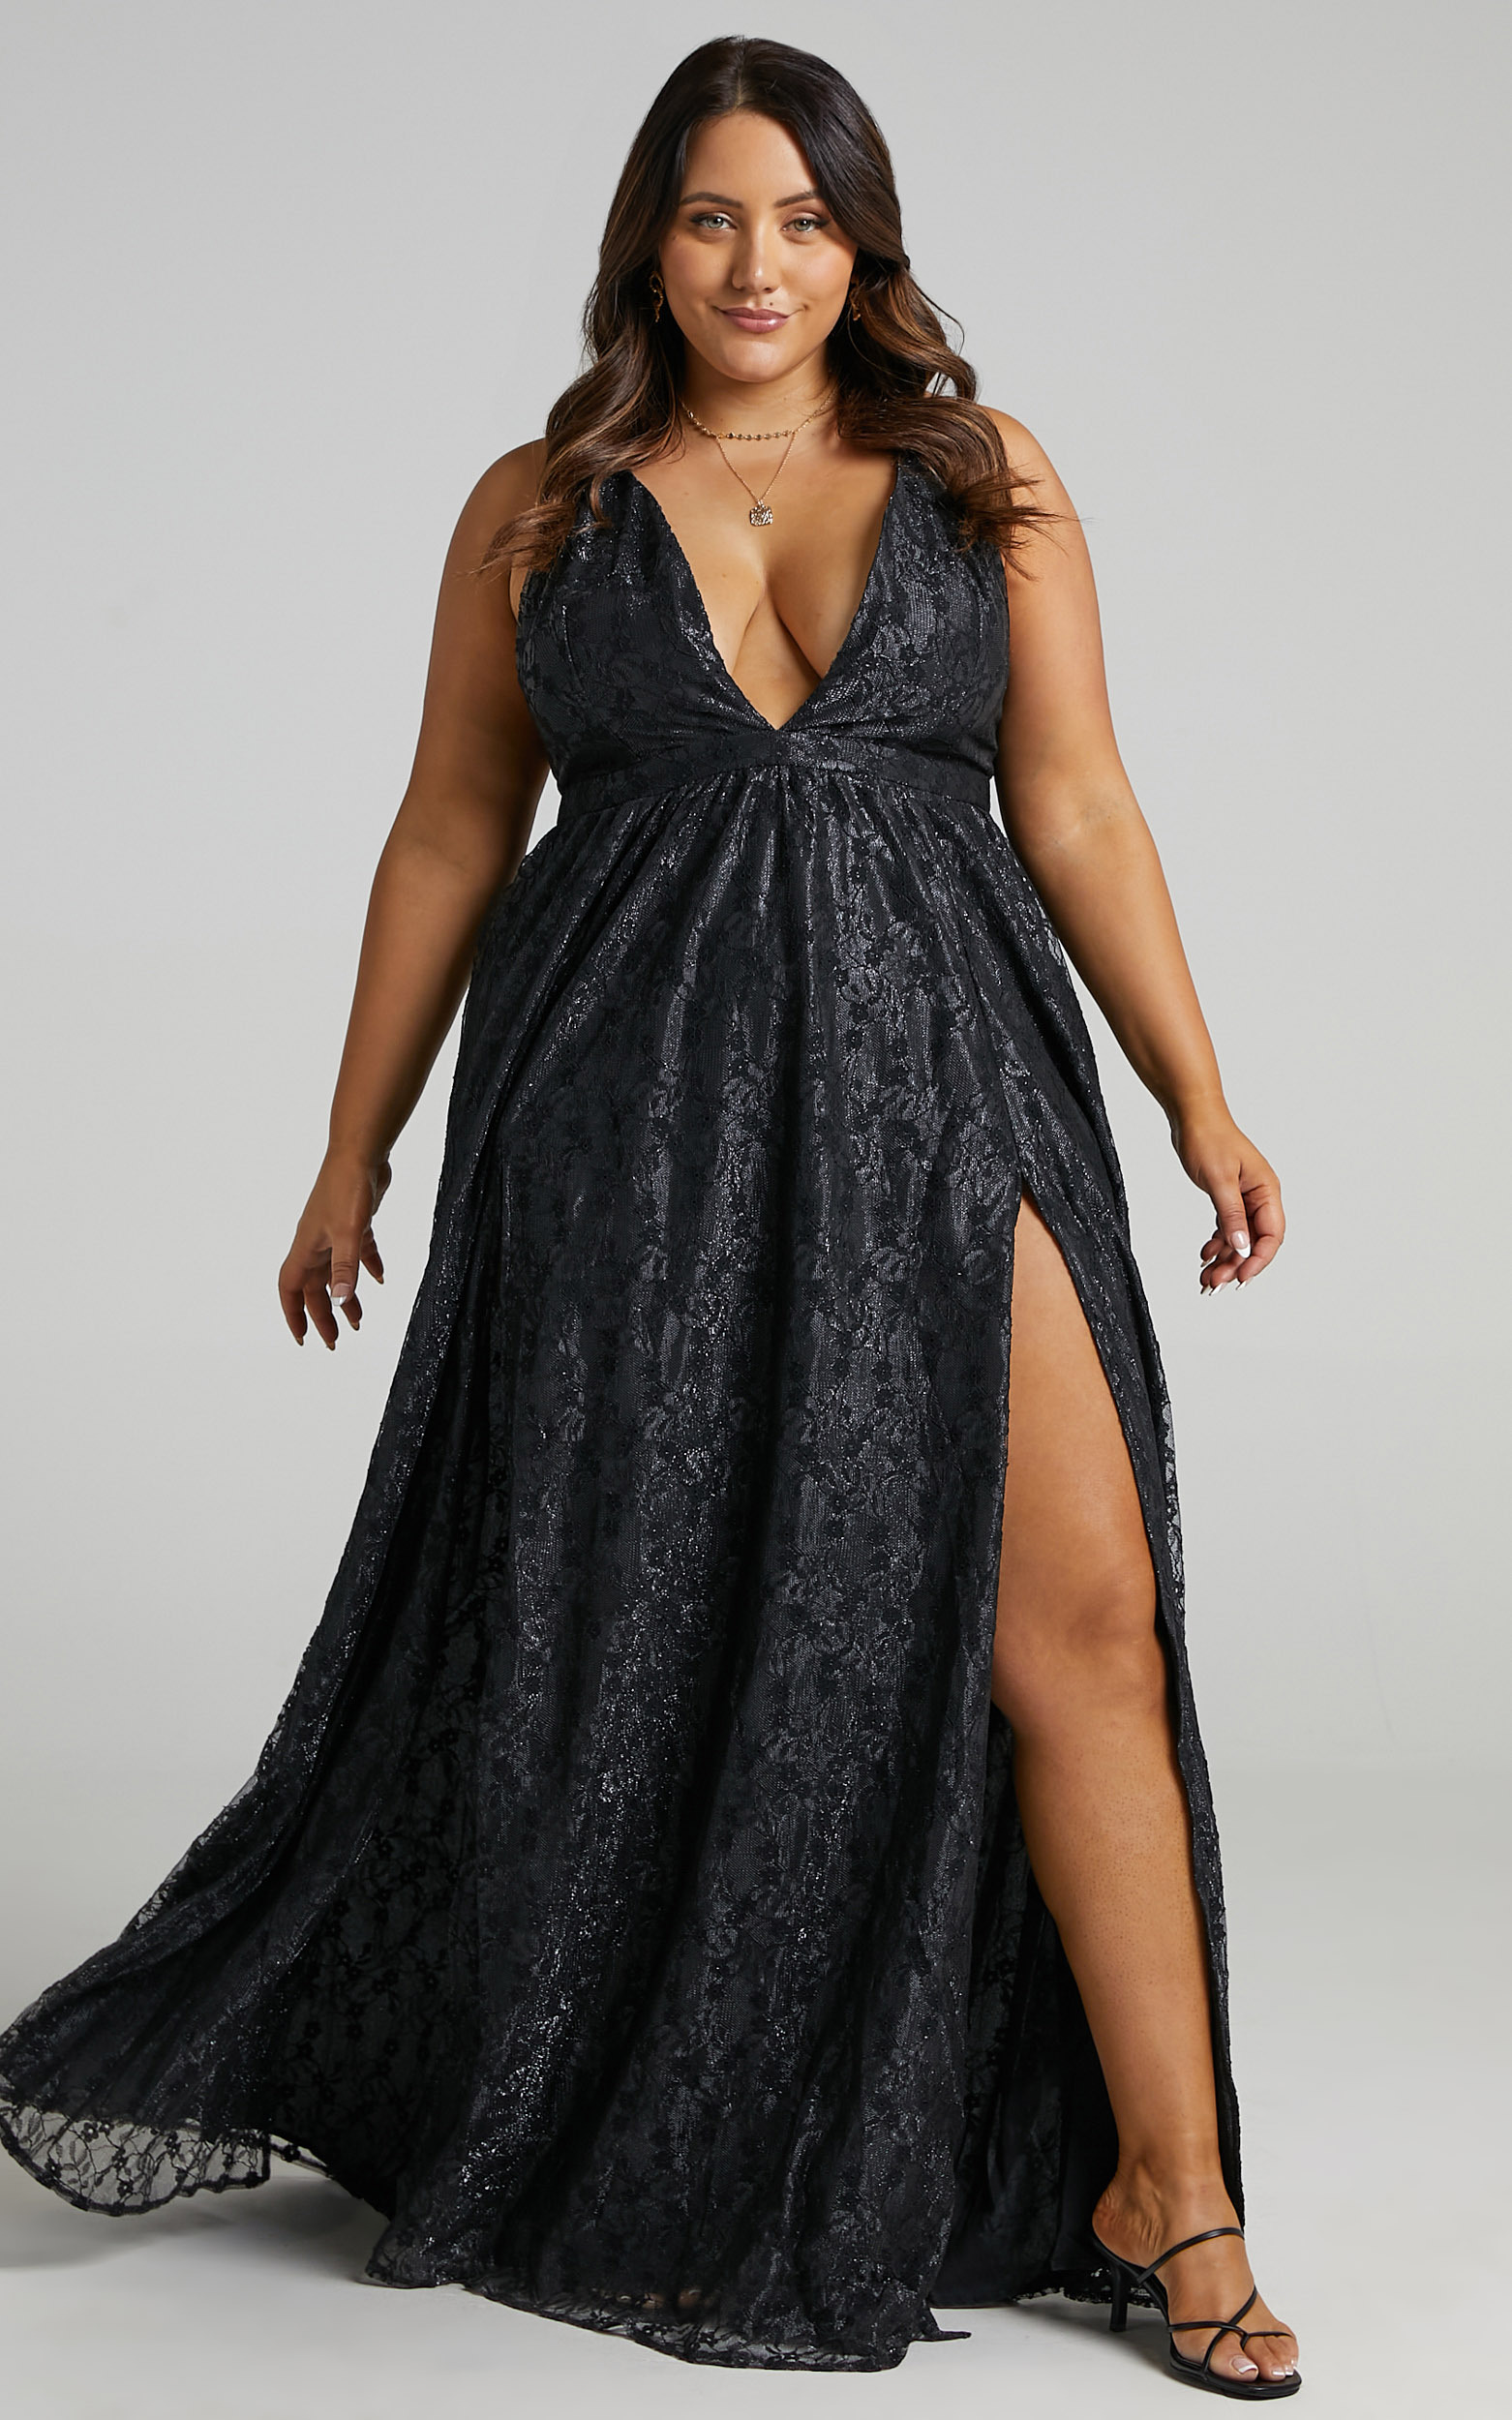 See Some Places Dress in Black Lace - 20, BLK1, hi-res image number null